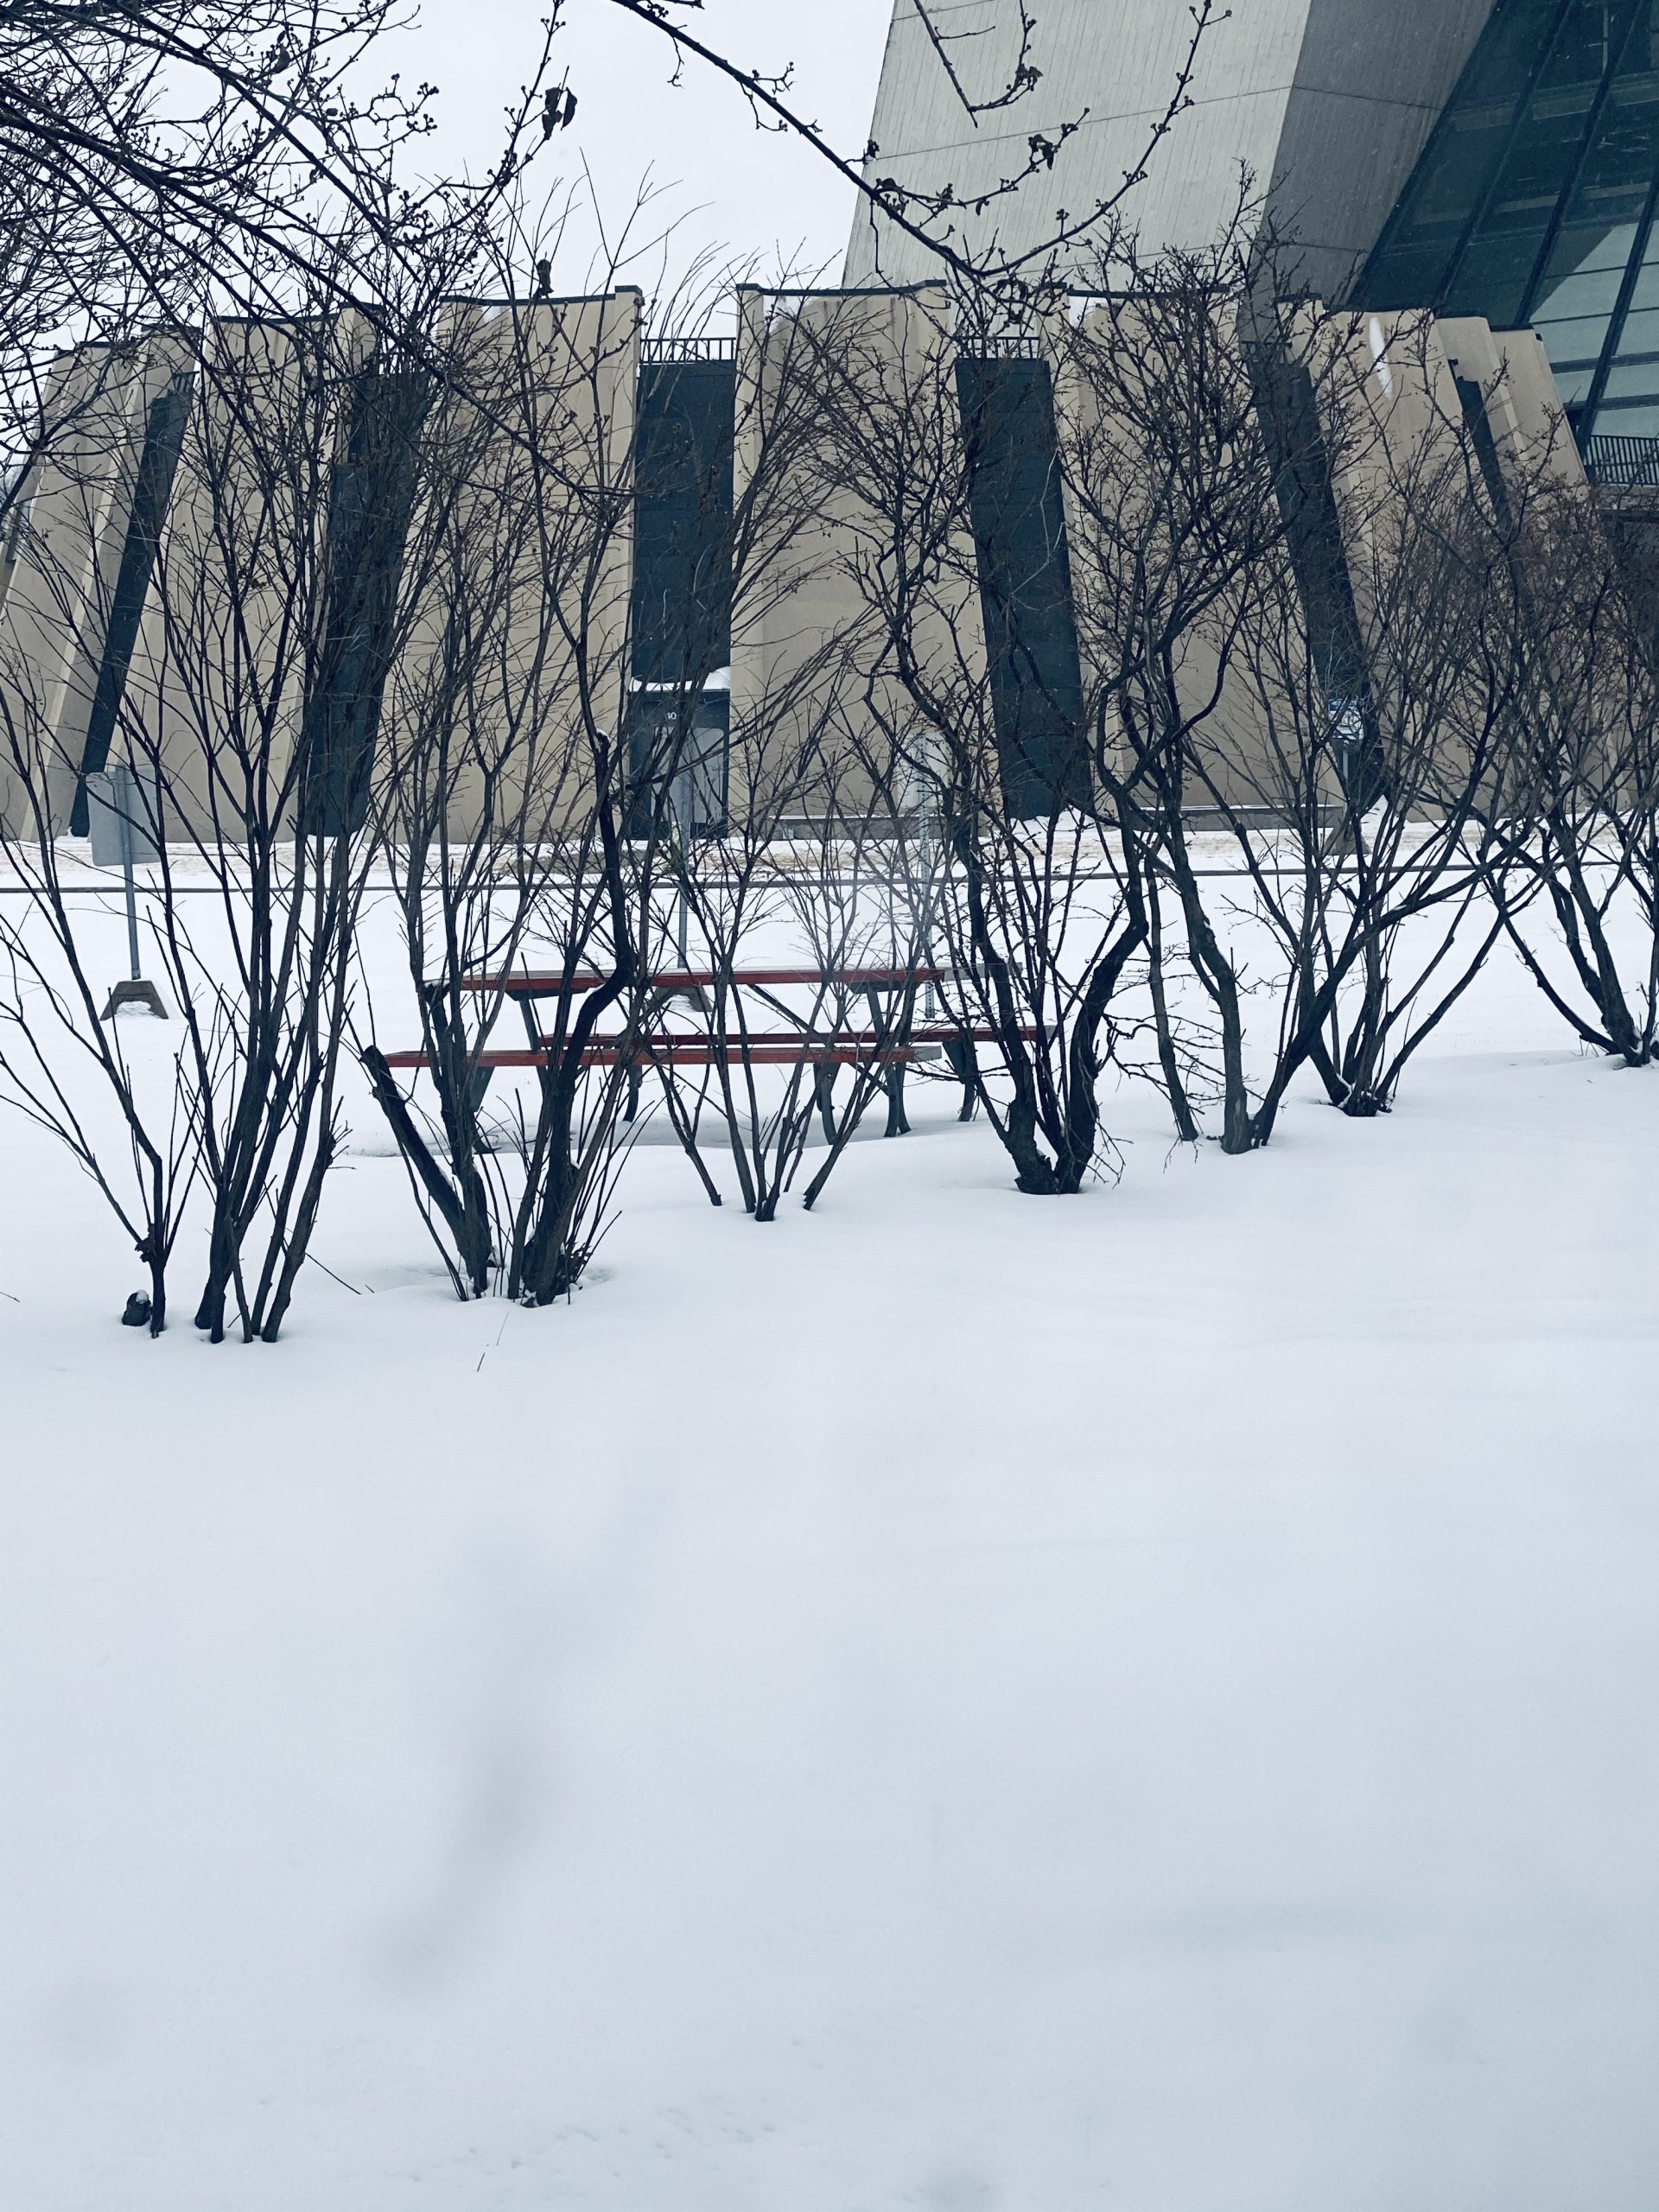 Finally: a beautiful view of Fermilab with not a car in sight, not even in the ever popular parking area by the cross gallery. building, winter, snow Photo: Sushmabhargavi Nimmalapalli